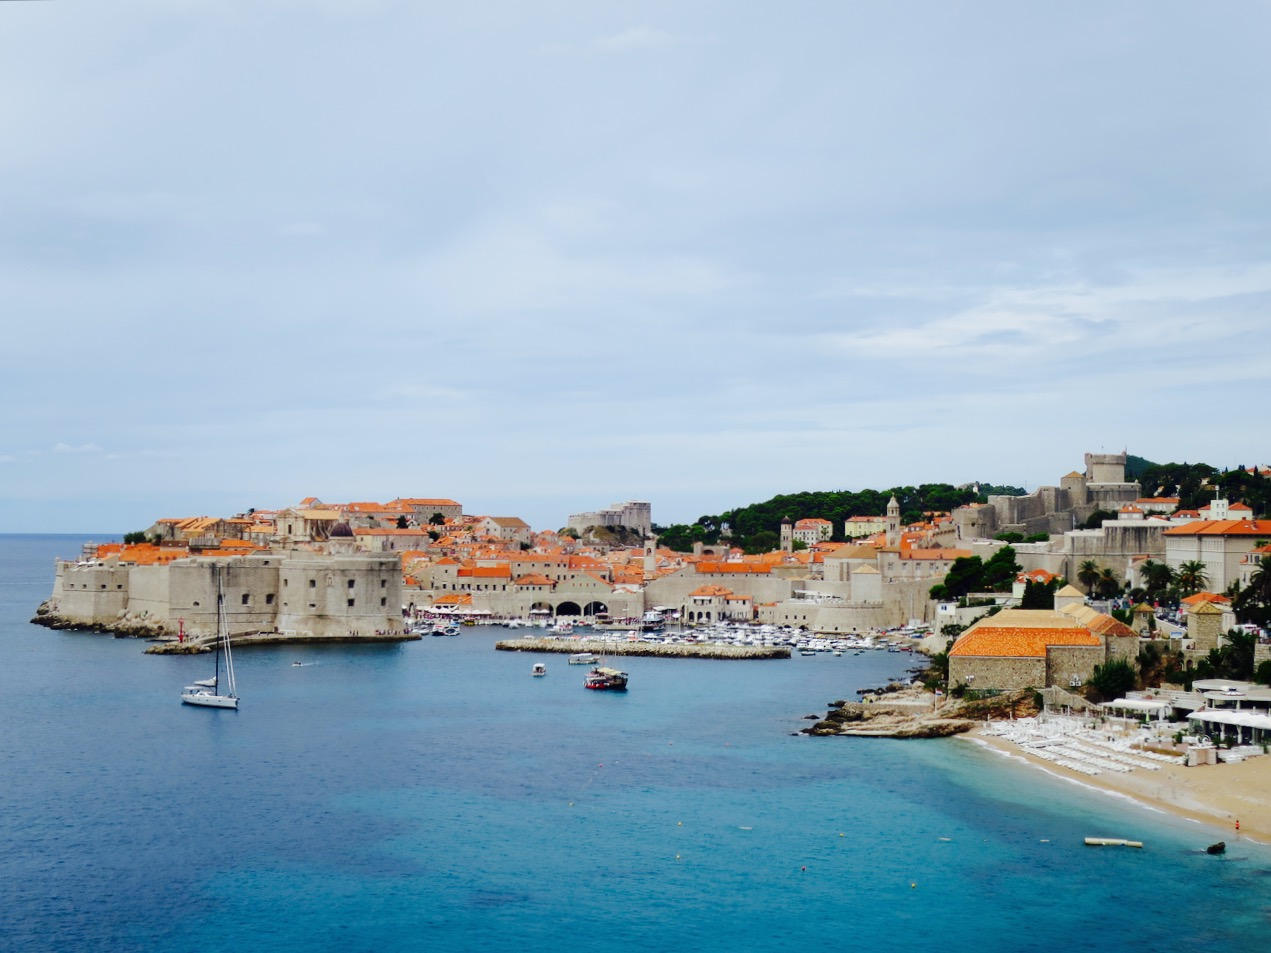 Dubrovnik Old Town Harbour View